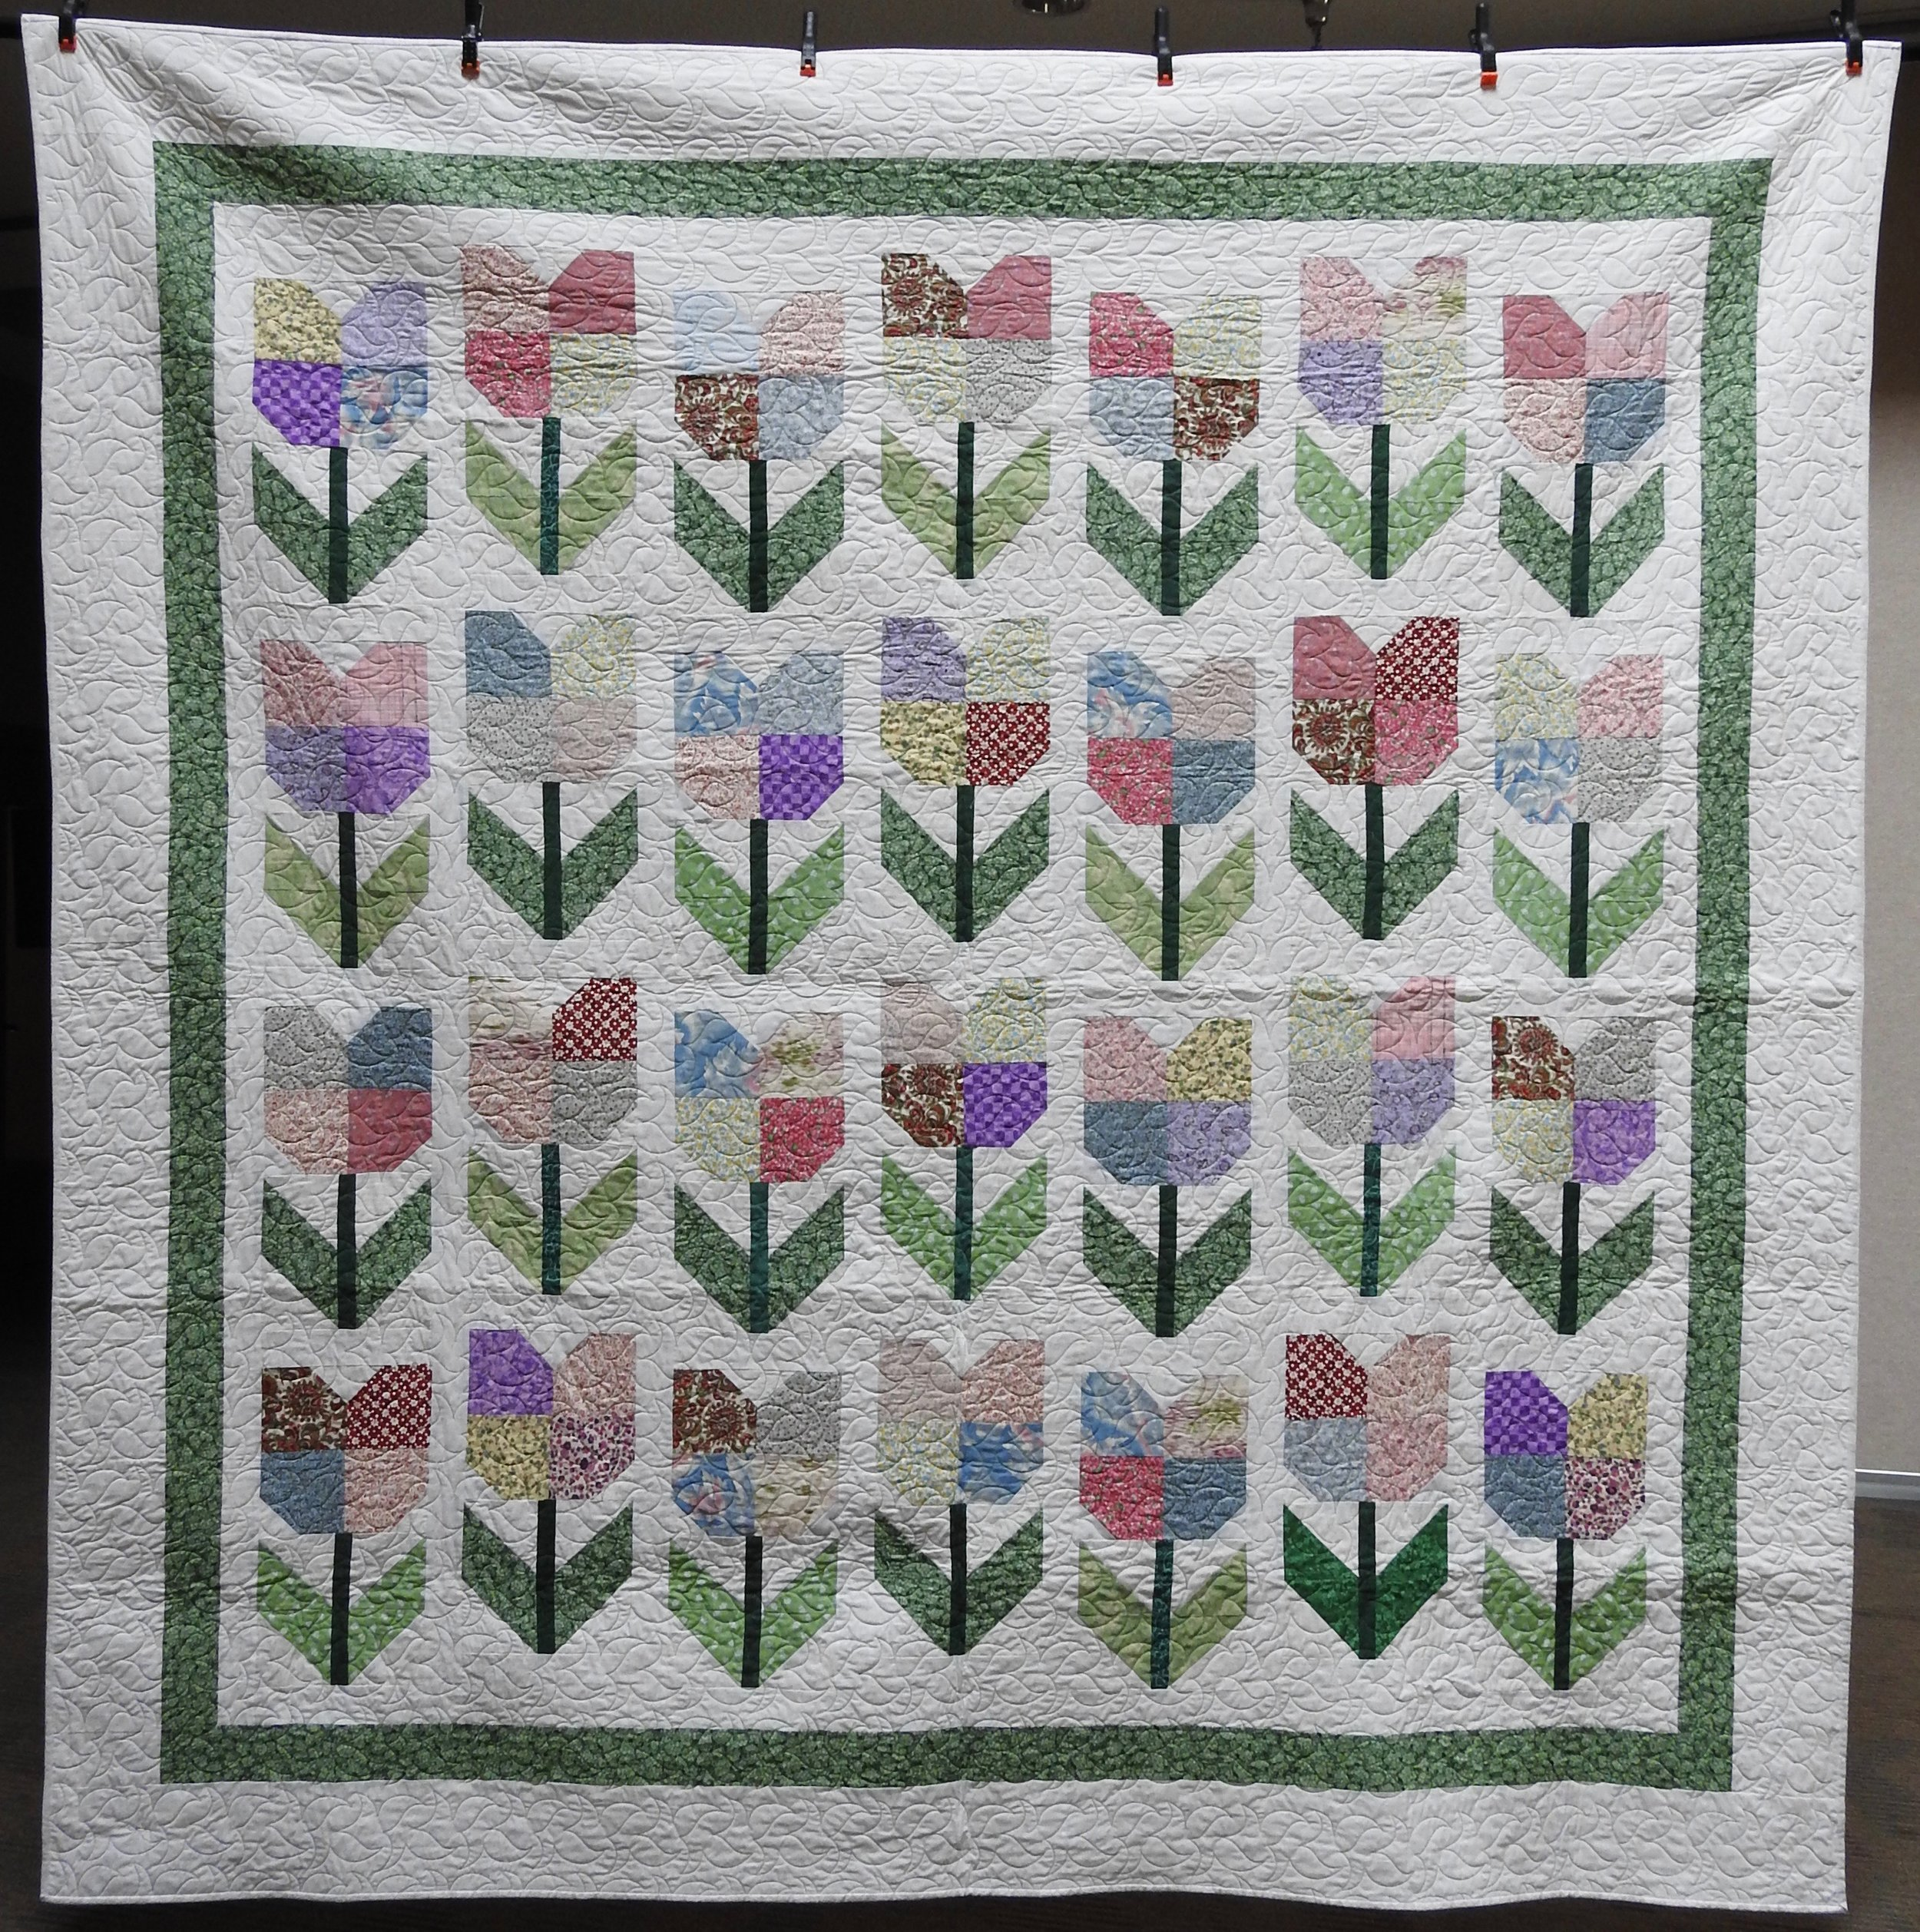 Totally Tulips, Pieced by Ruby Bontreger, Edge to Edge Machine Quilted, Signed & Dated, donated by First Mennonite, Middlebury, 96 x 96""